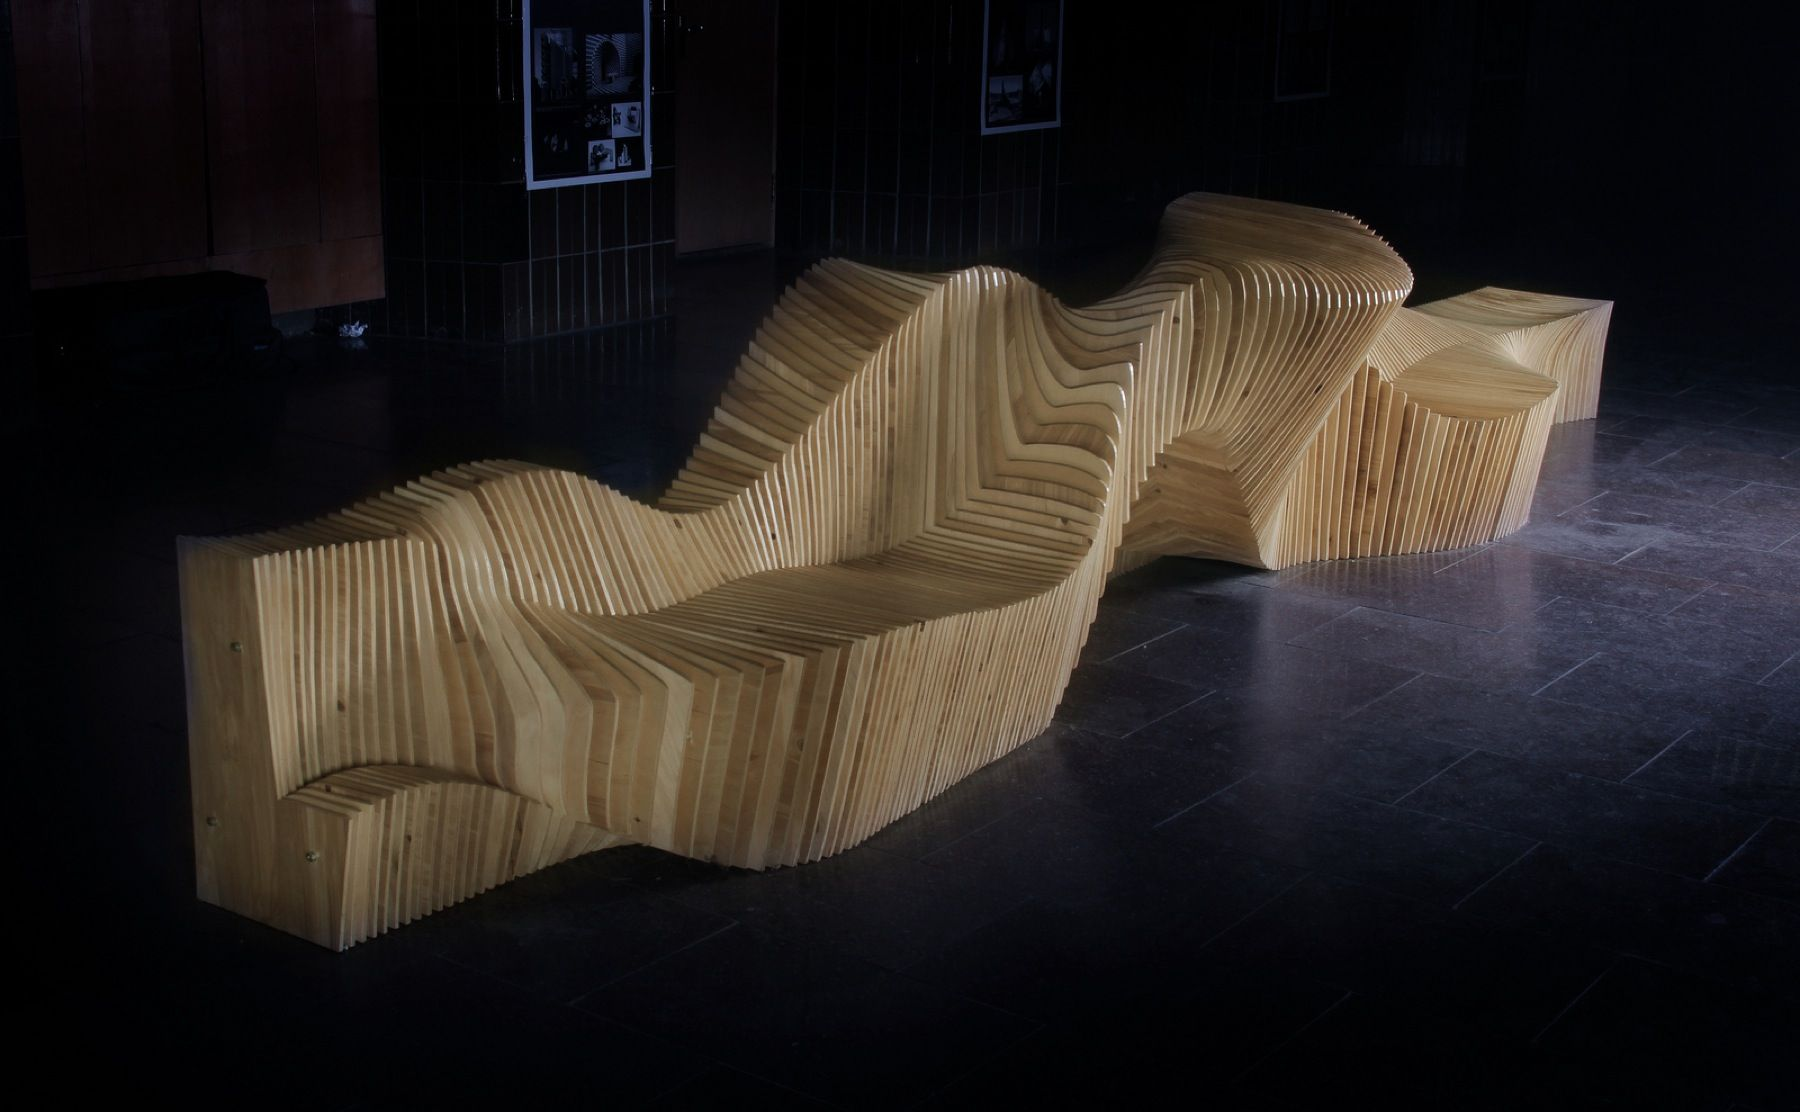 Multifunctional Bench Kyiv National University Arch2o Com Sculptural Furniture Installation Architecture Design Multifunctional